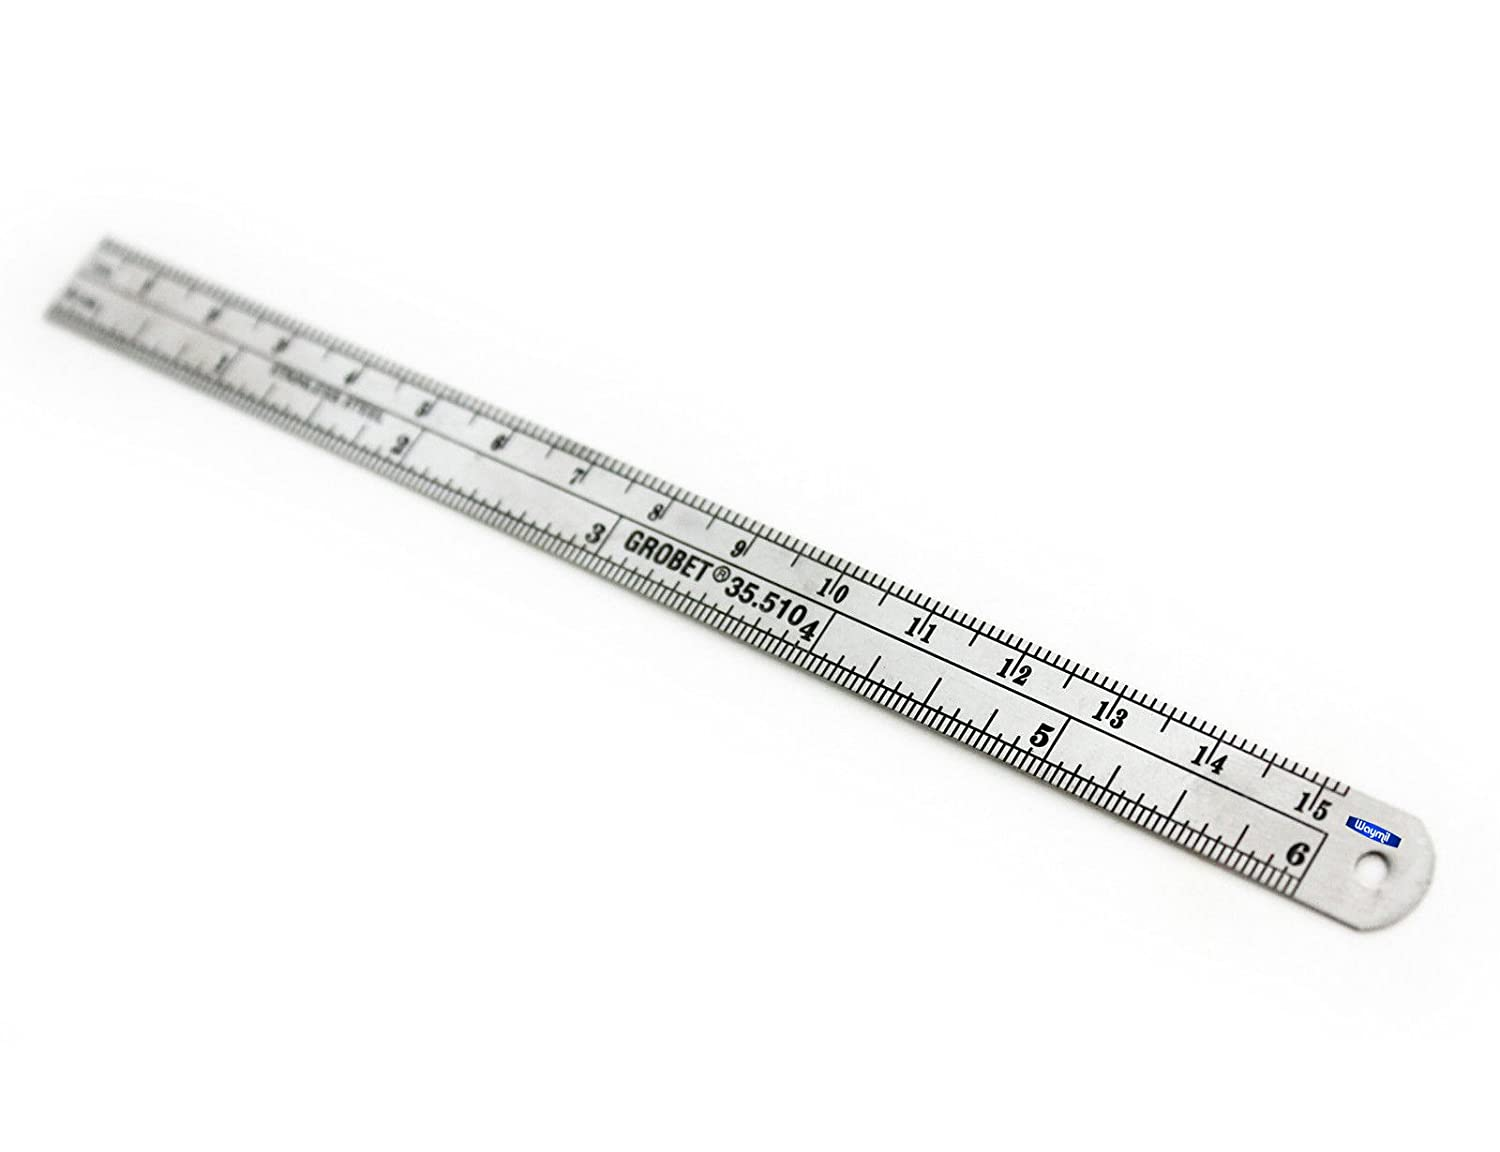 STEEL RULER 6 JEWELRY MAKING TOOL SIZER INCH AND MM Unbranded